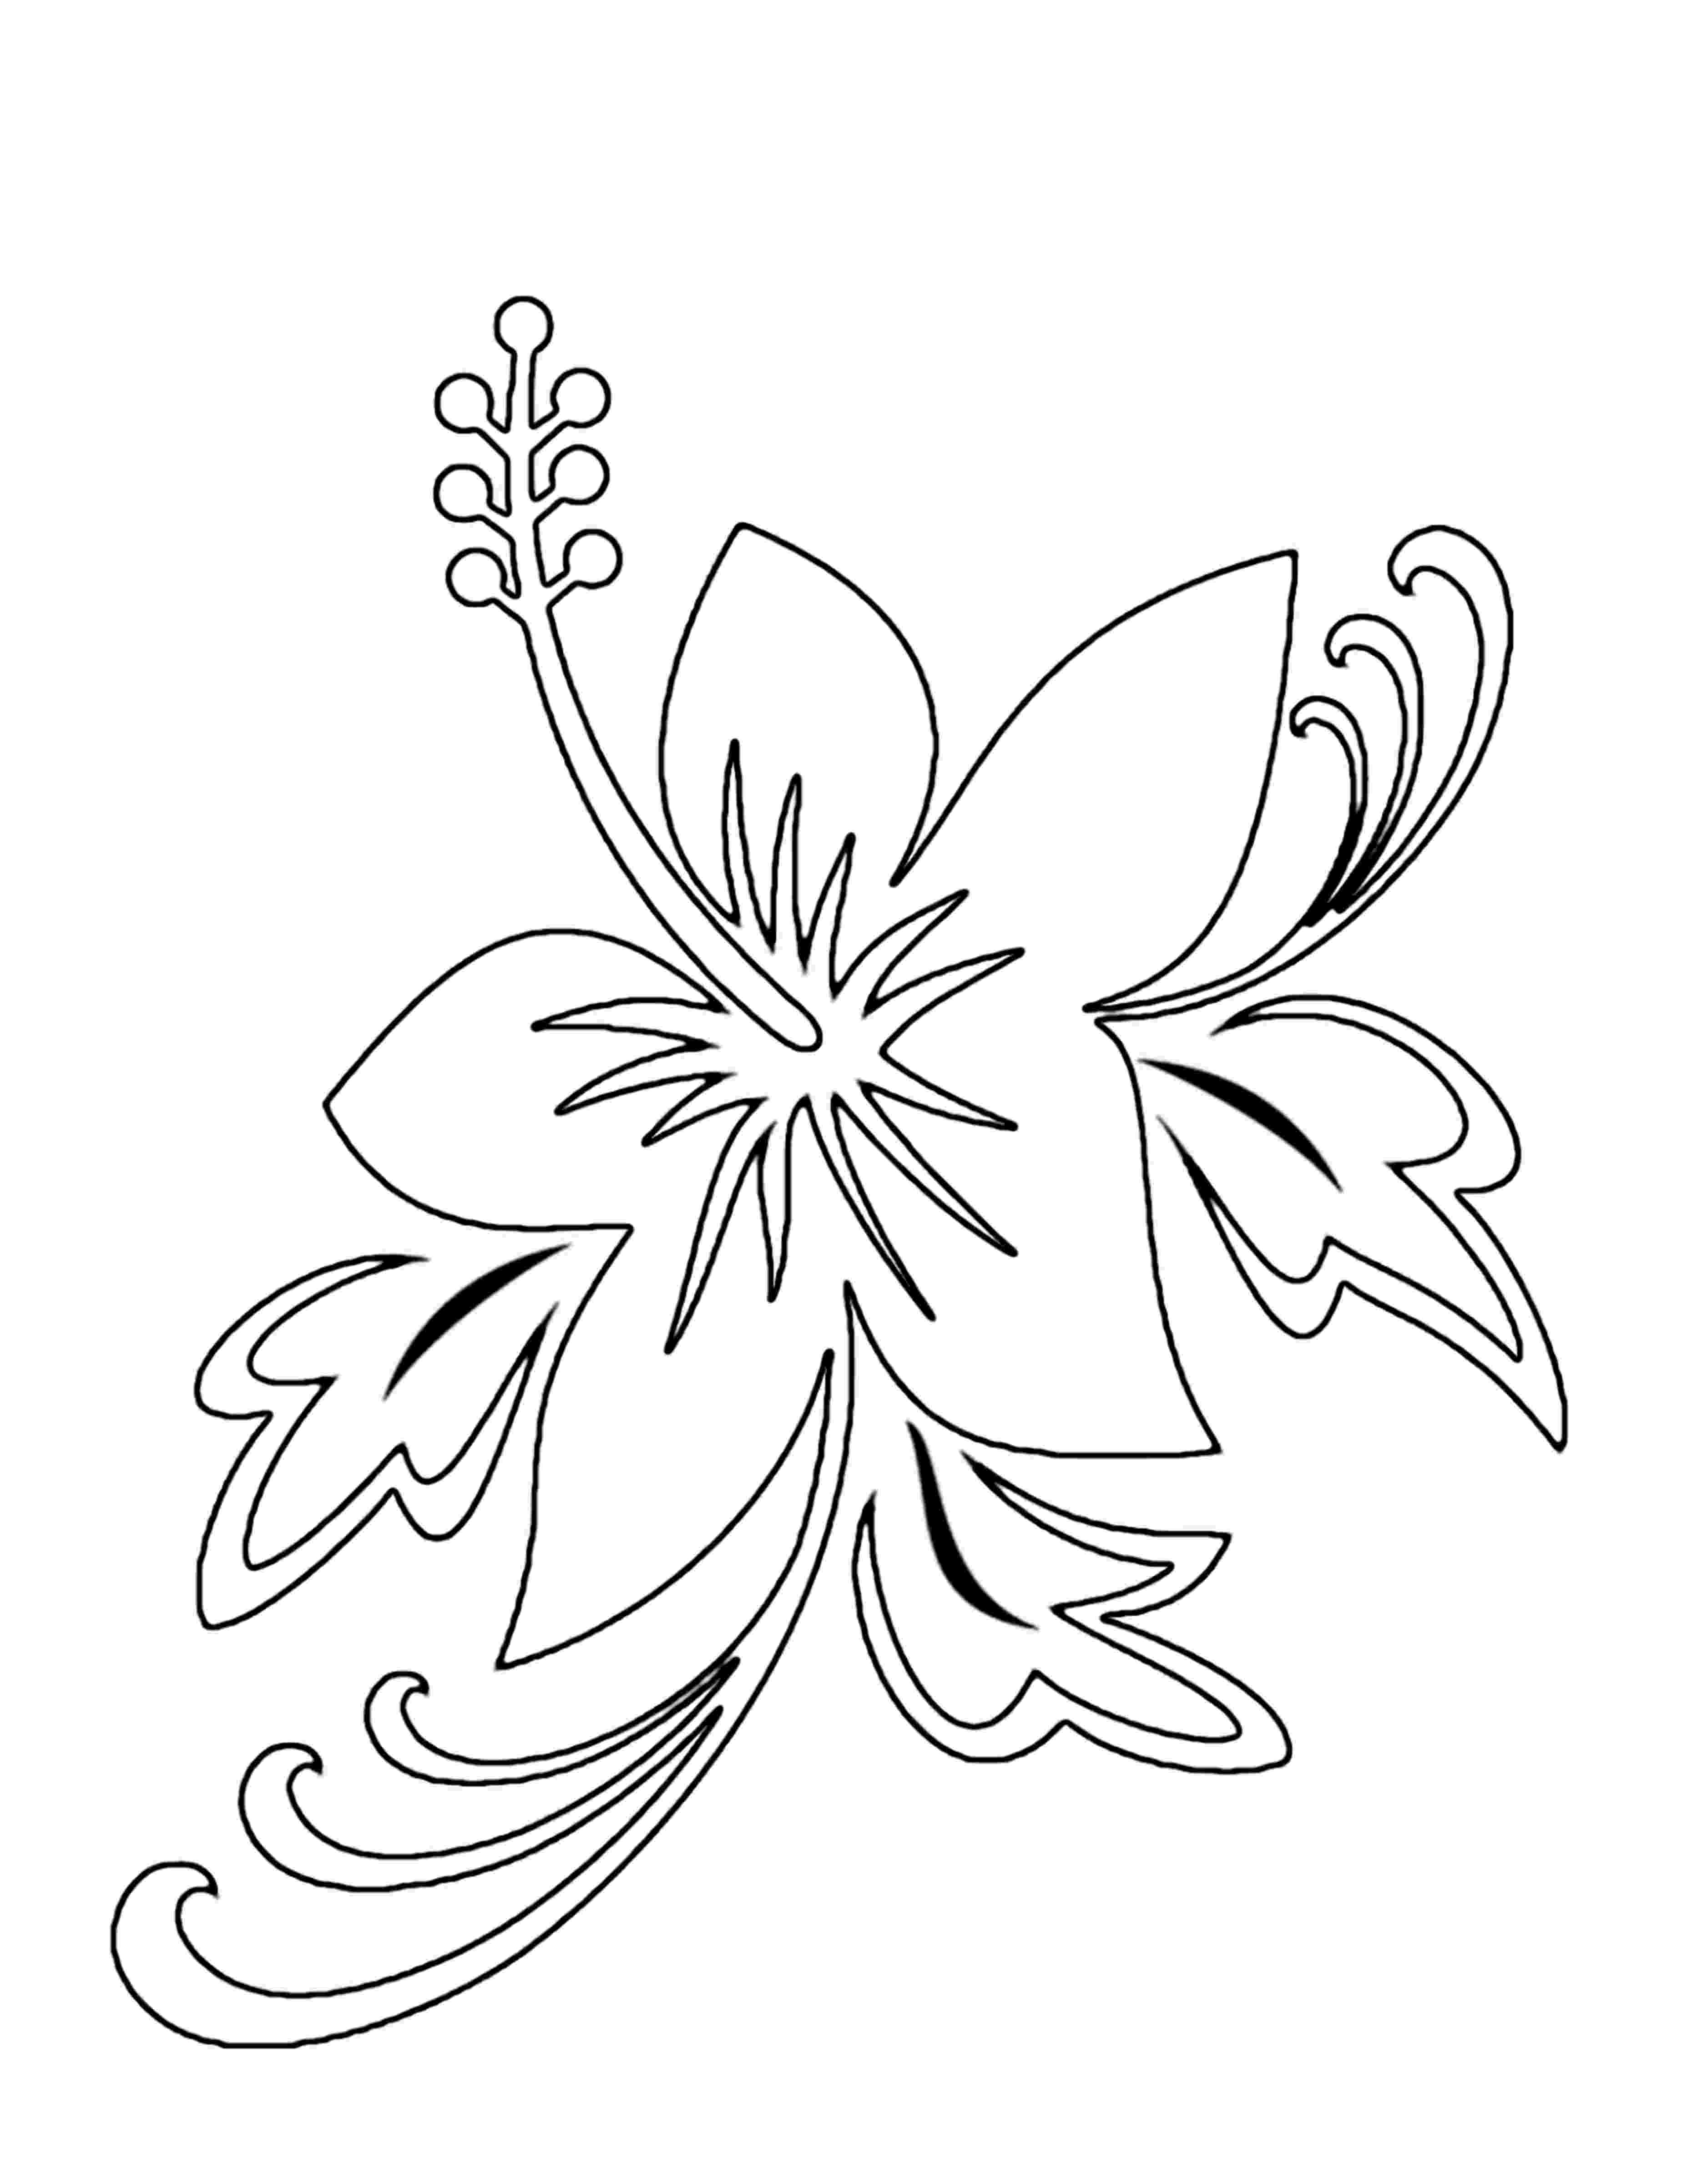 flower coloring pages printables free printable flower coloring pages for kids best printables coloring pages flower 1 1